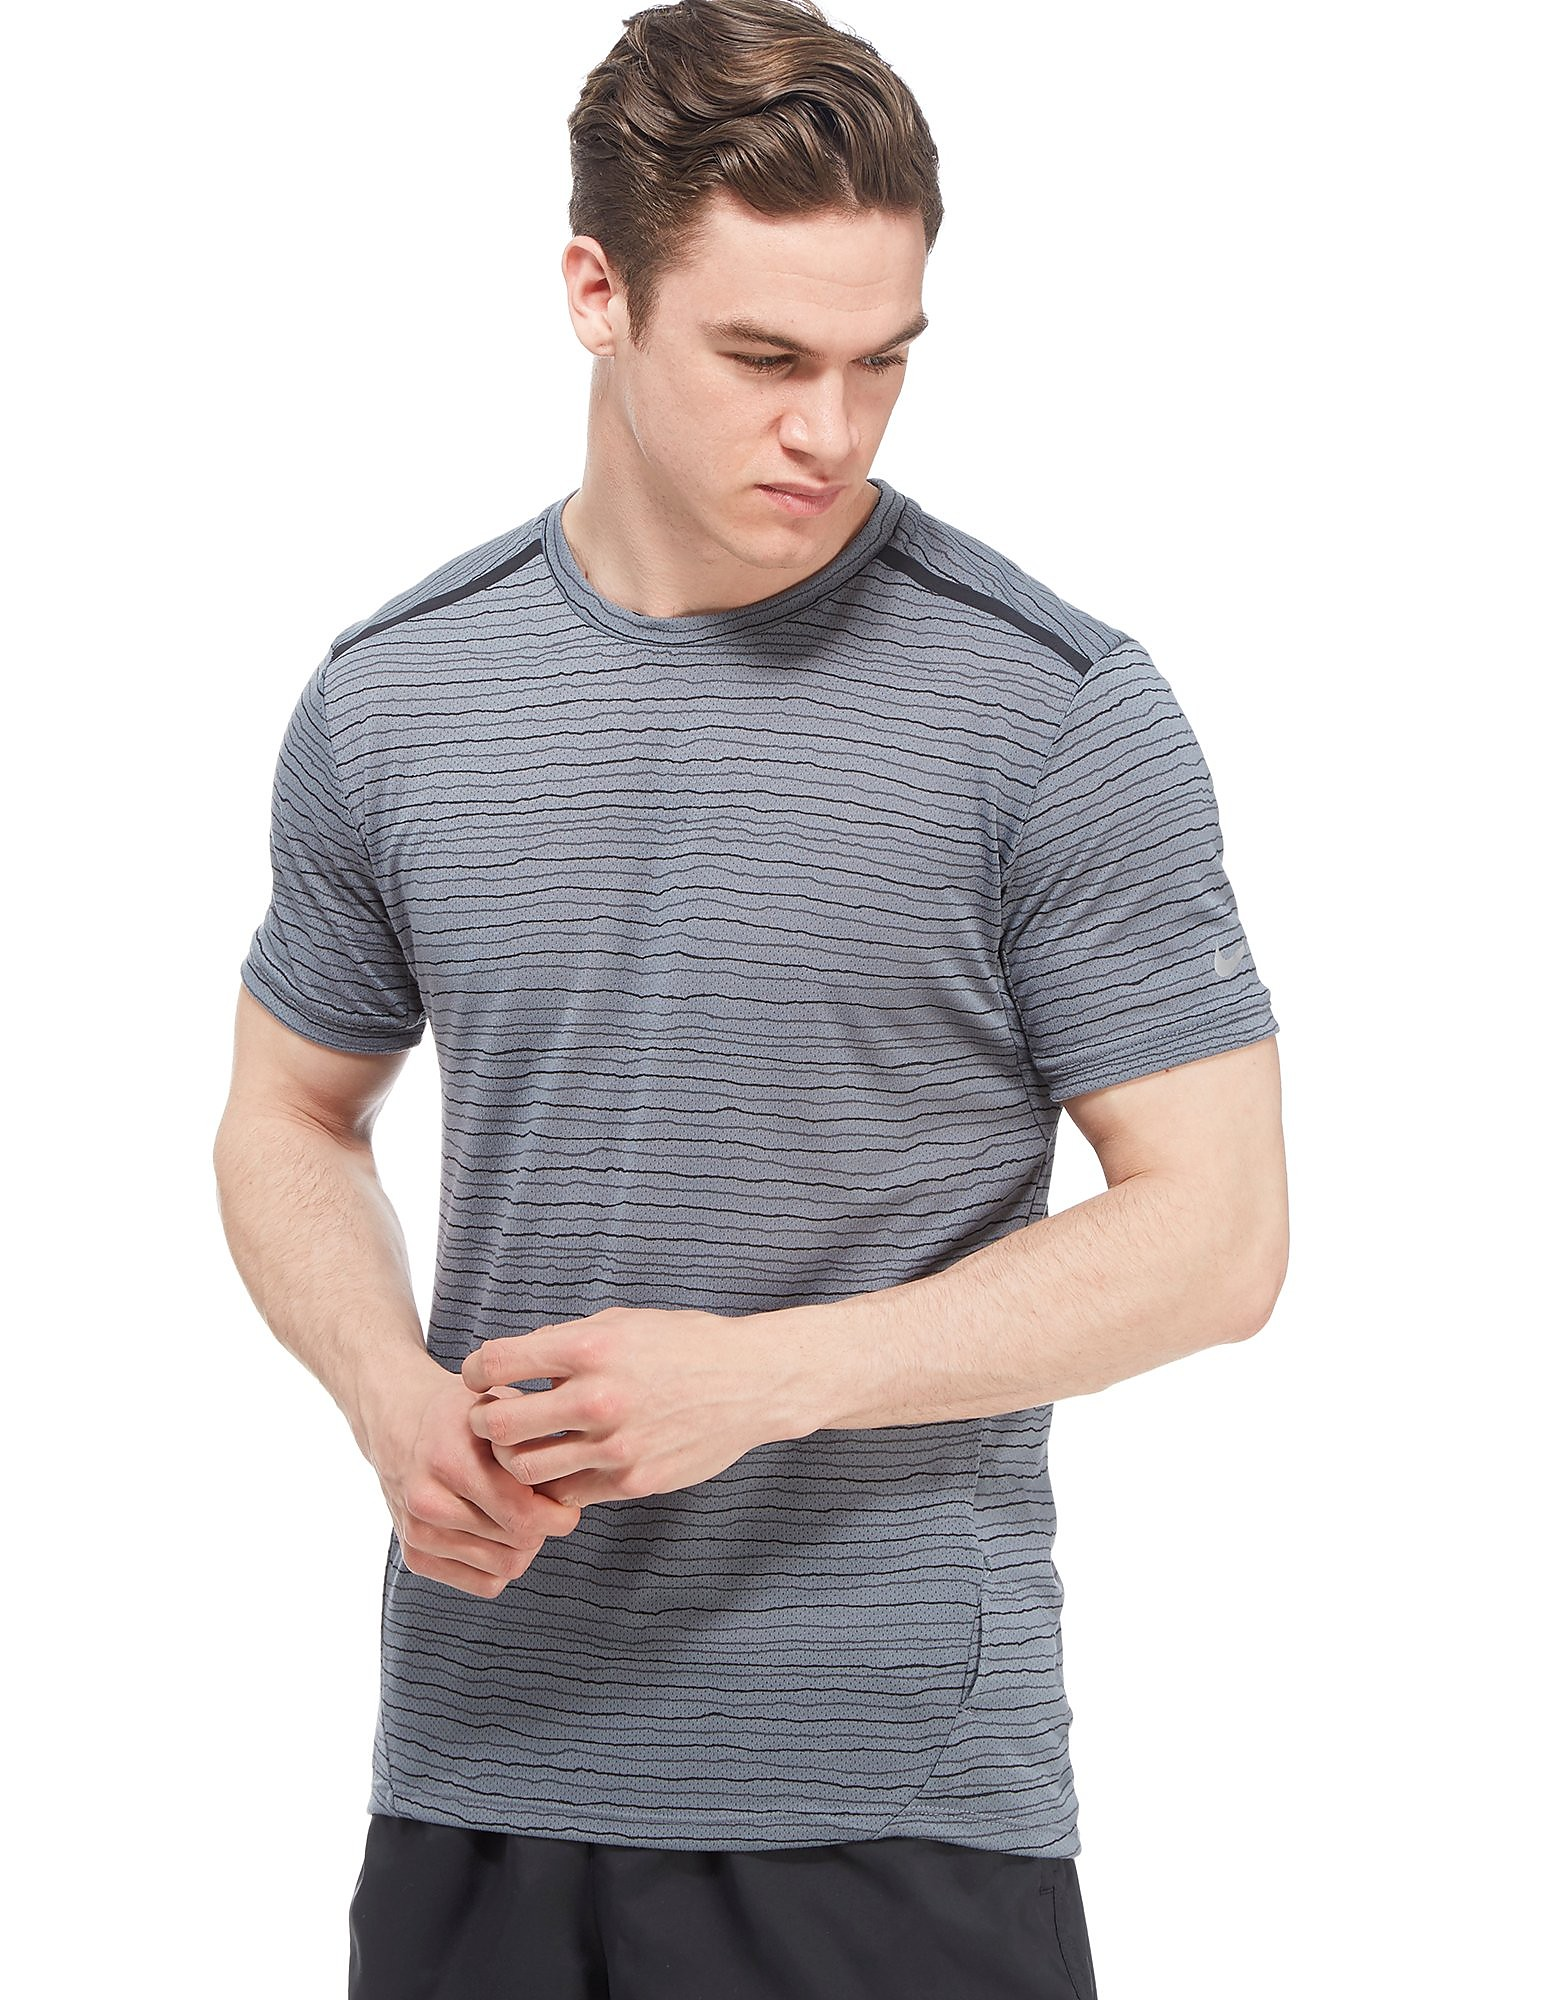 Nike Dri-FIT Cool Tailwind Stripe T-Shirt